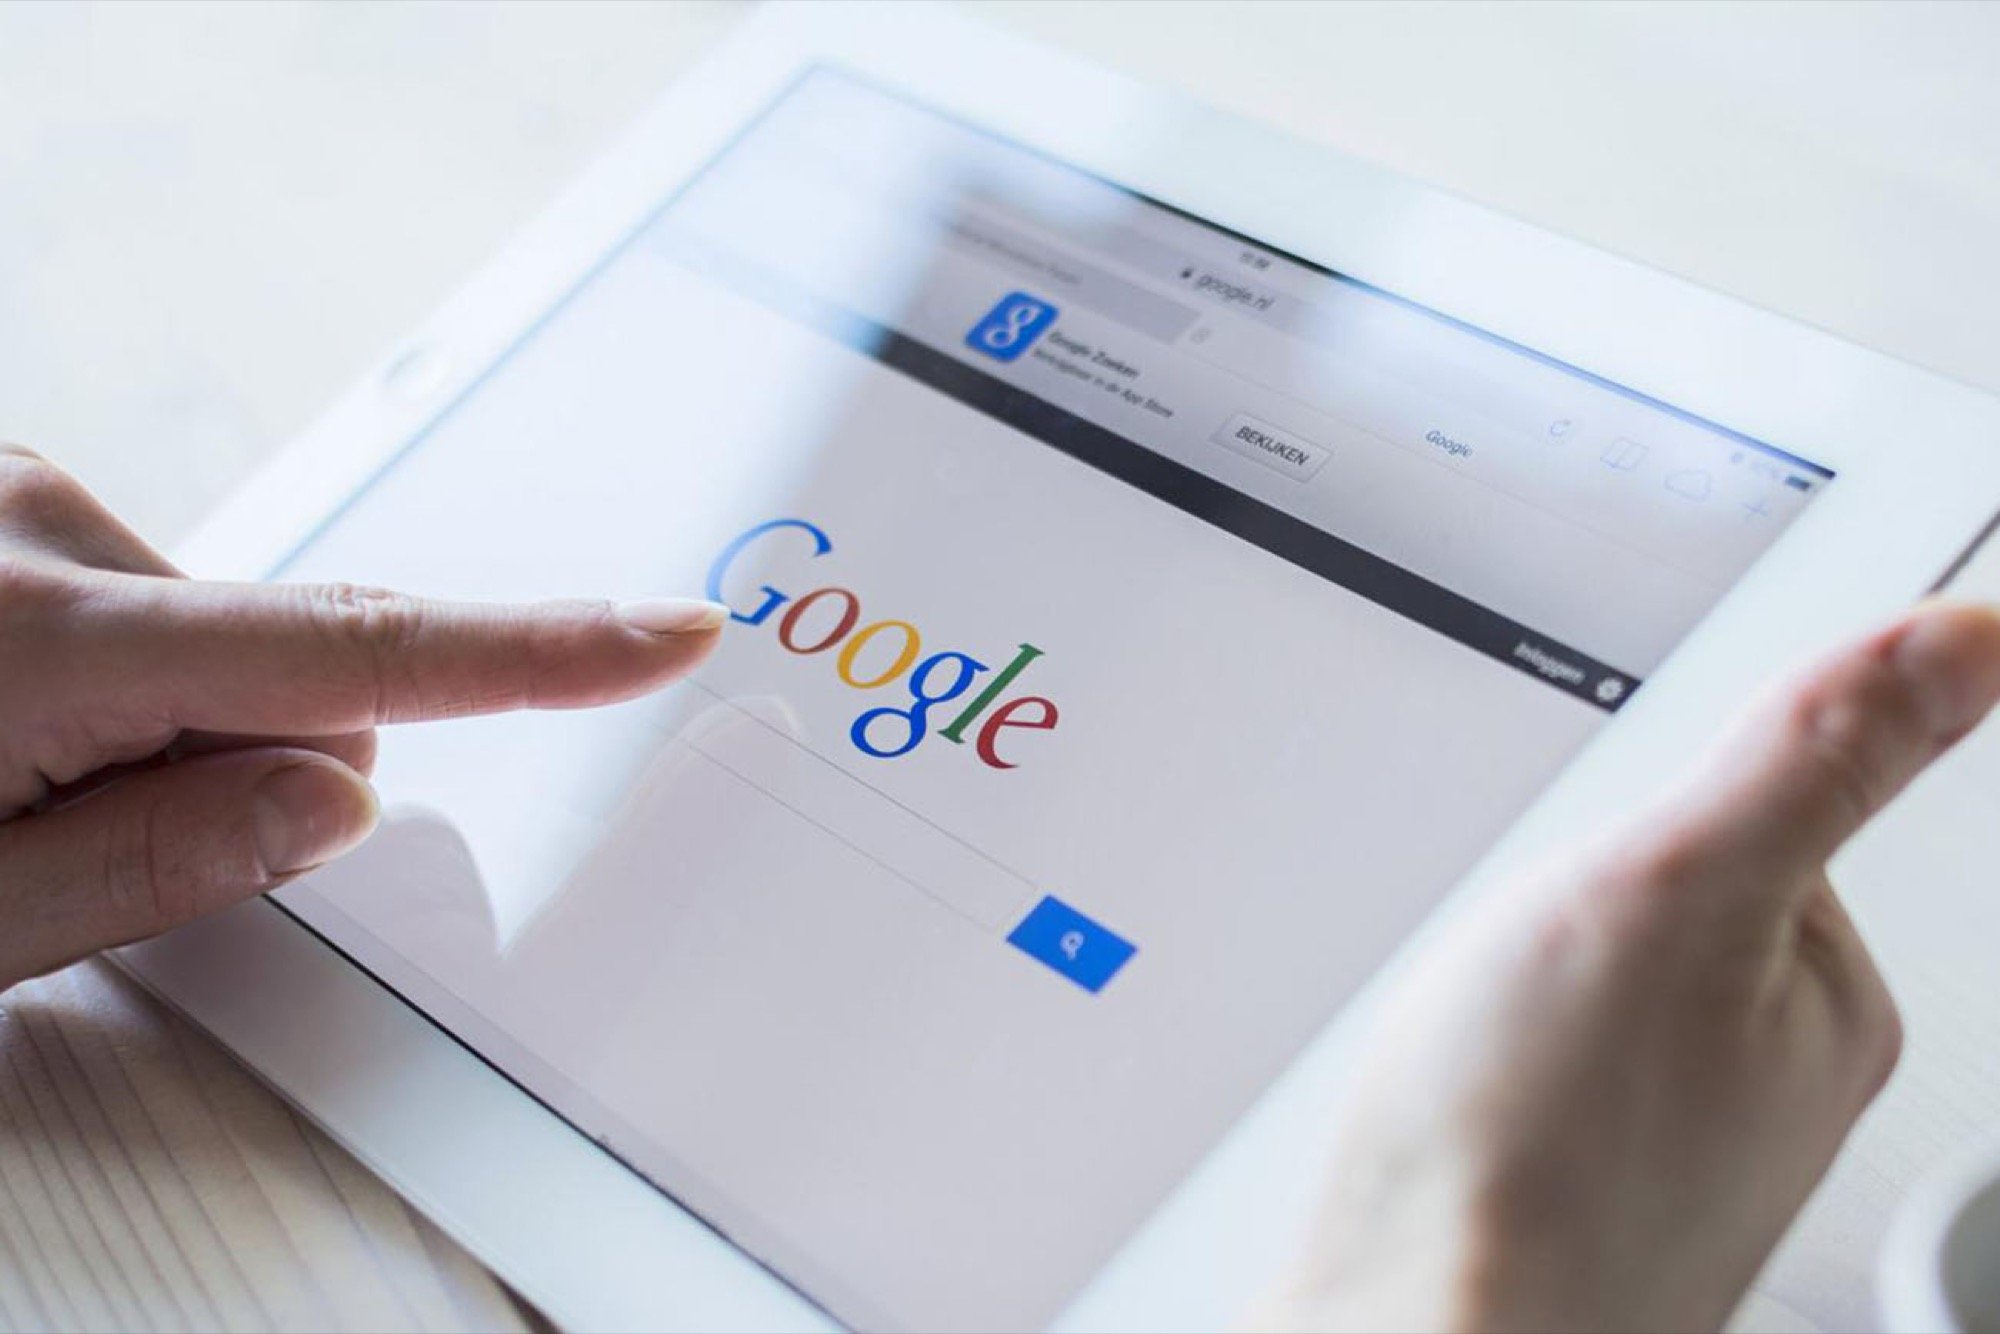 20141029125340-5-reasons-business-should-not-advertise-google-adwords